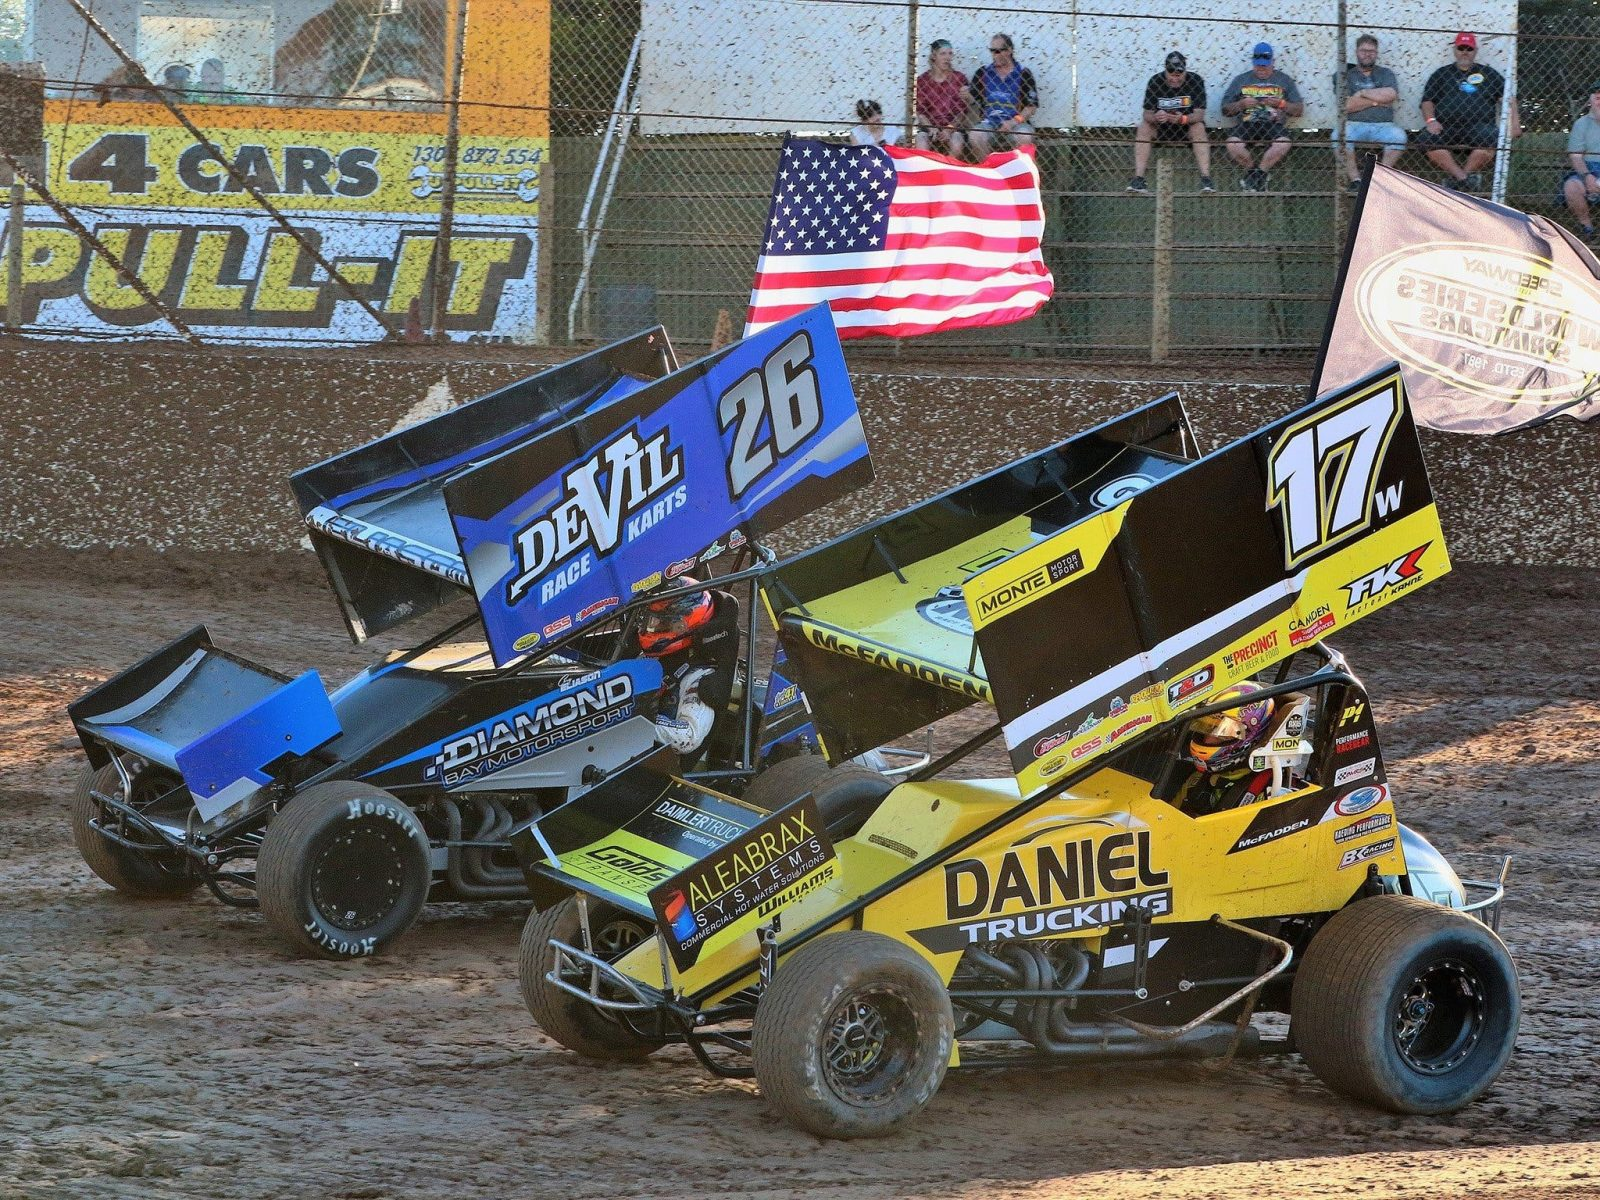 USA vs AUS at last years World Series at Murray Machining & Sheds Speedway